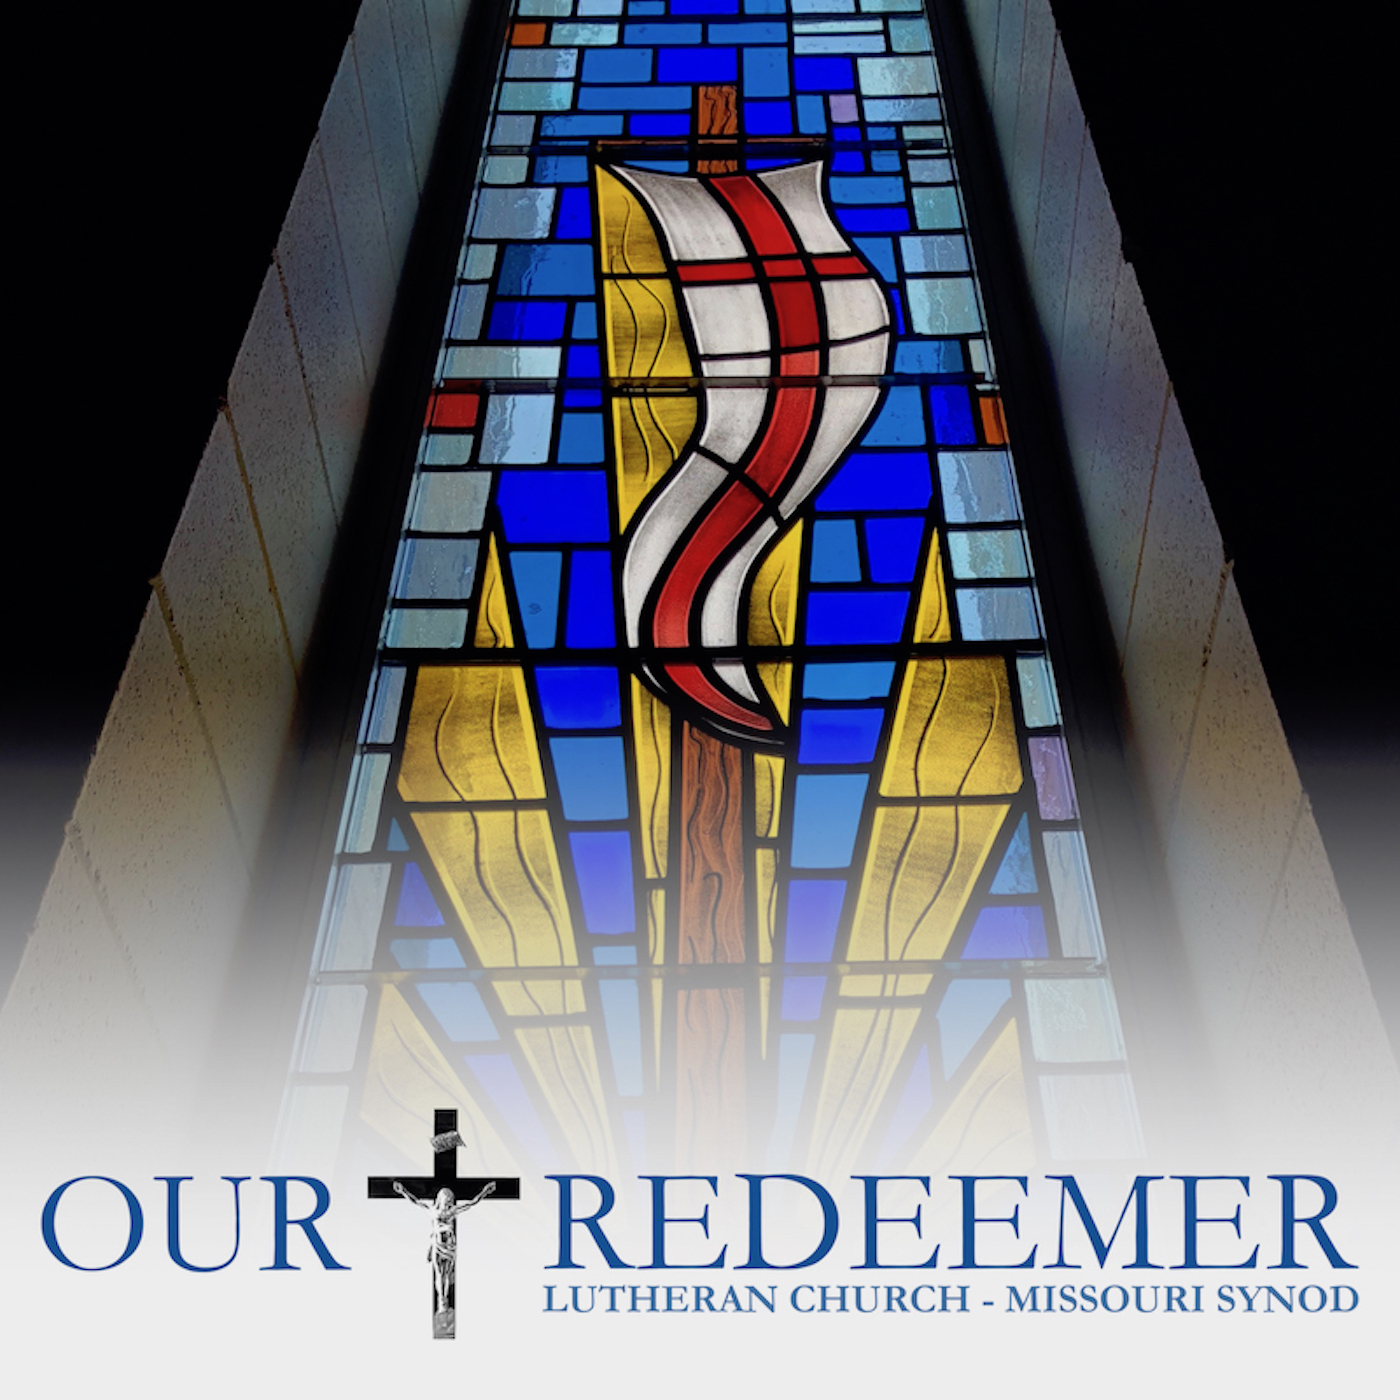 Sermons from Our Redeemer Lutheran Church